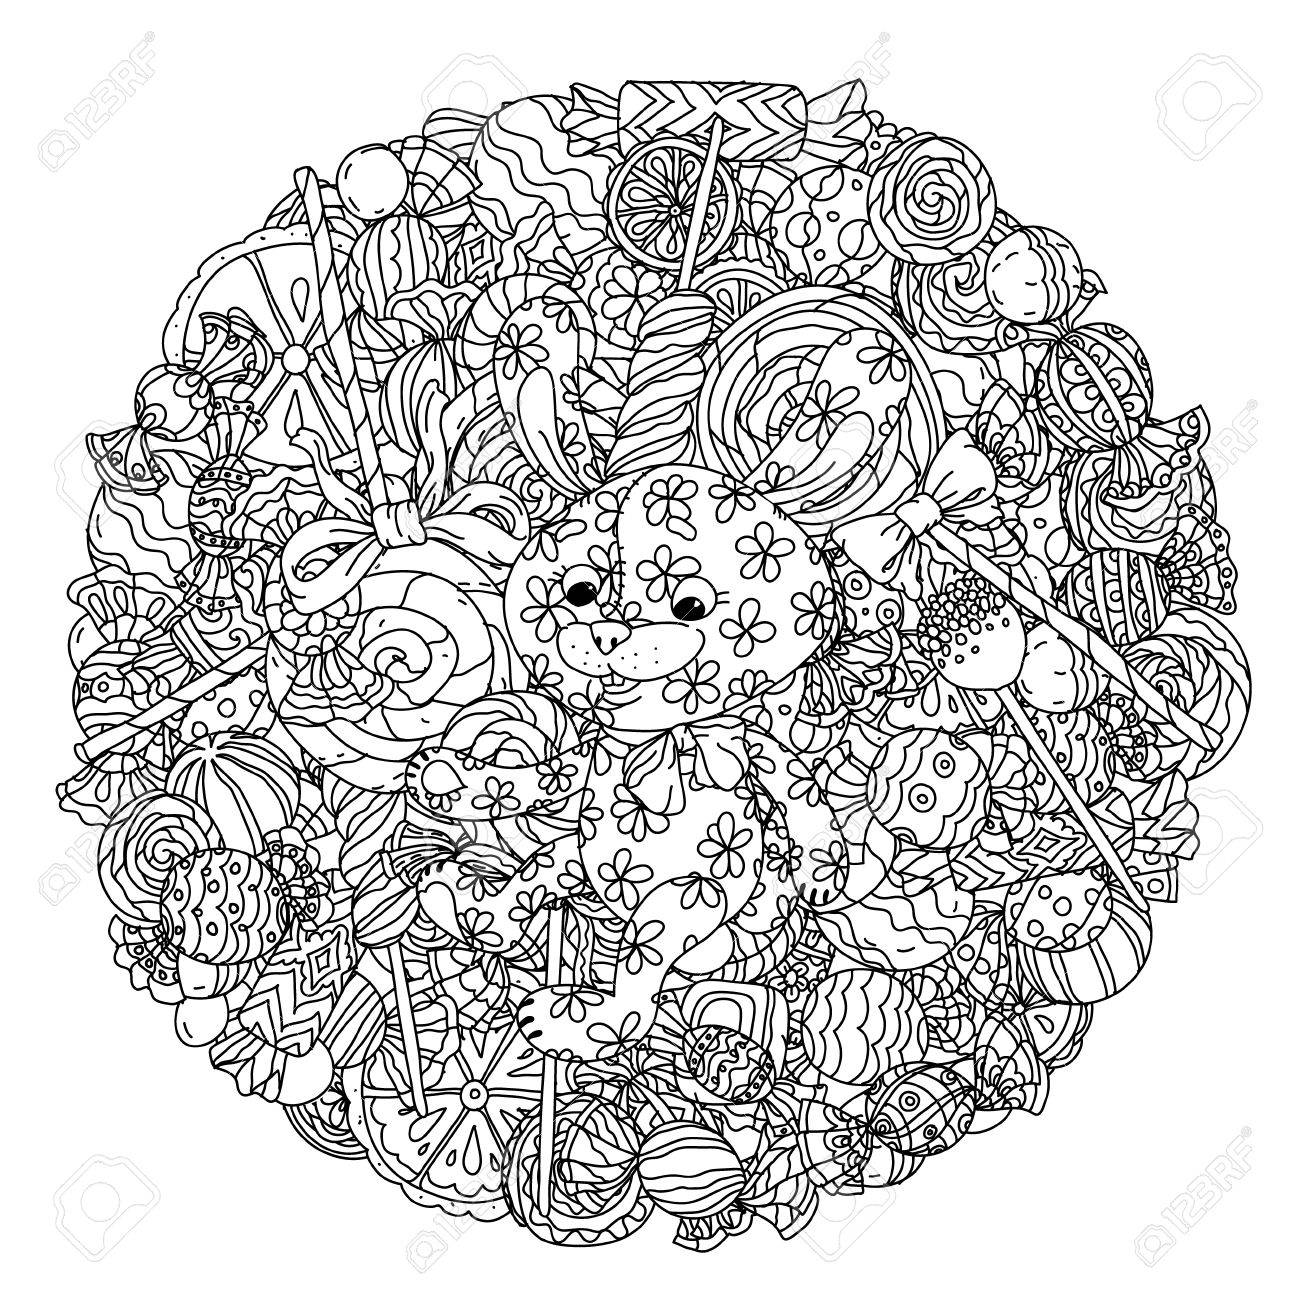 Uncolored Toy And Sweets In Coloring Book Style Hand Drawn Doodle Vector